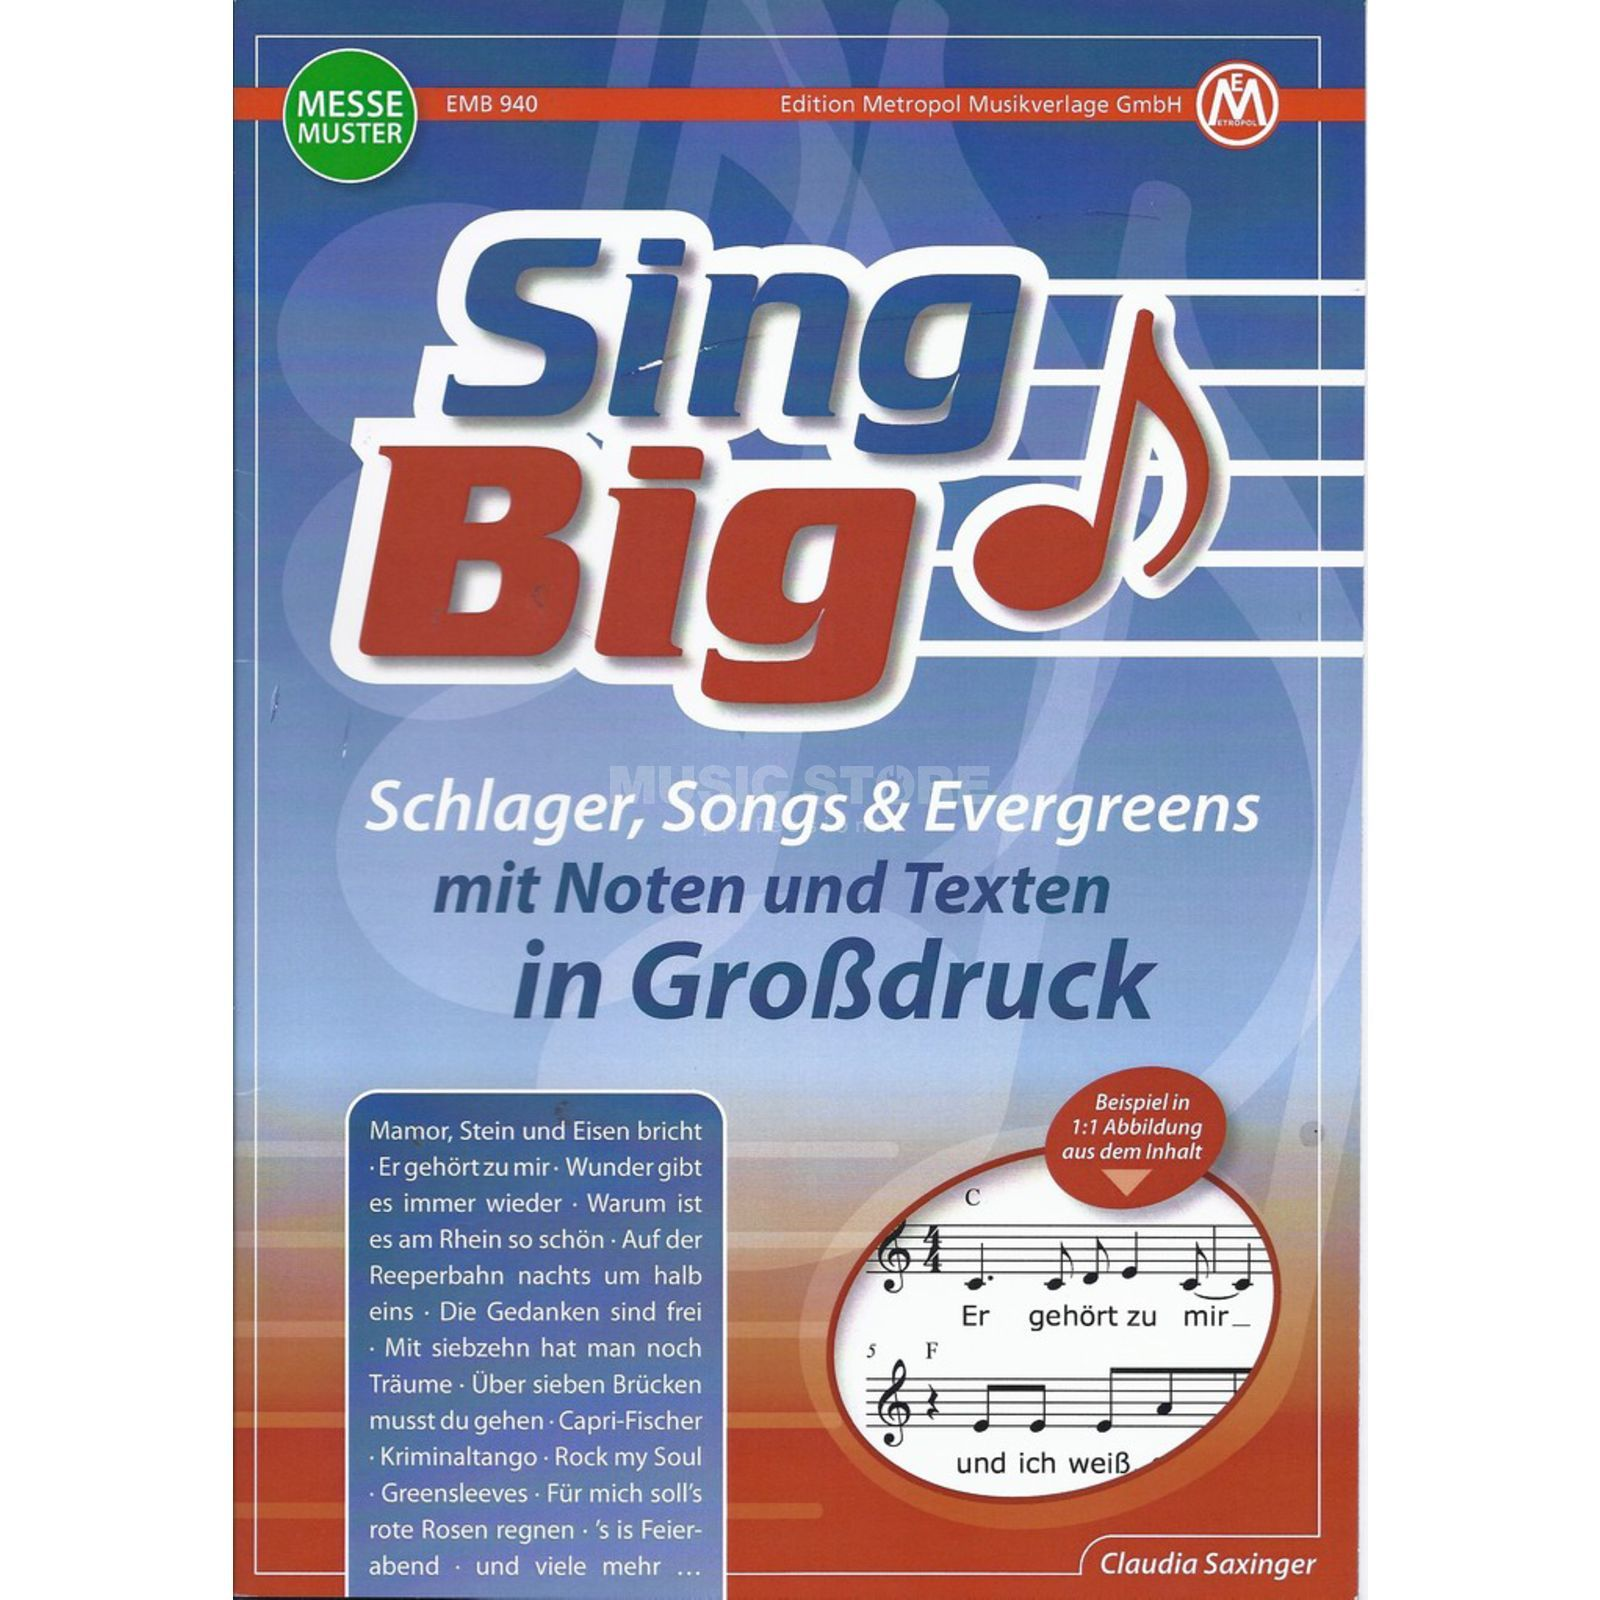 Edition Metropol Sing Big - Schlager, Songs & Evergreens im Großdruck Produktbillede